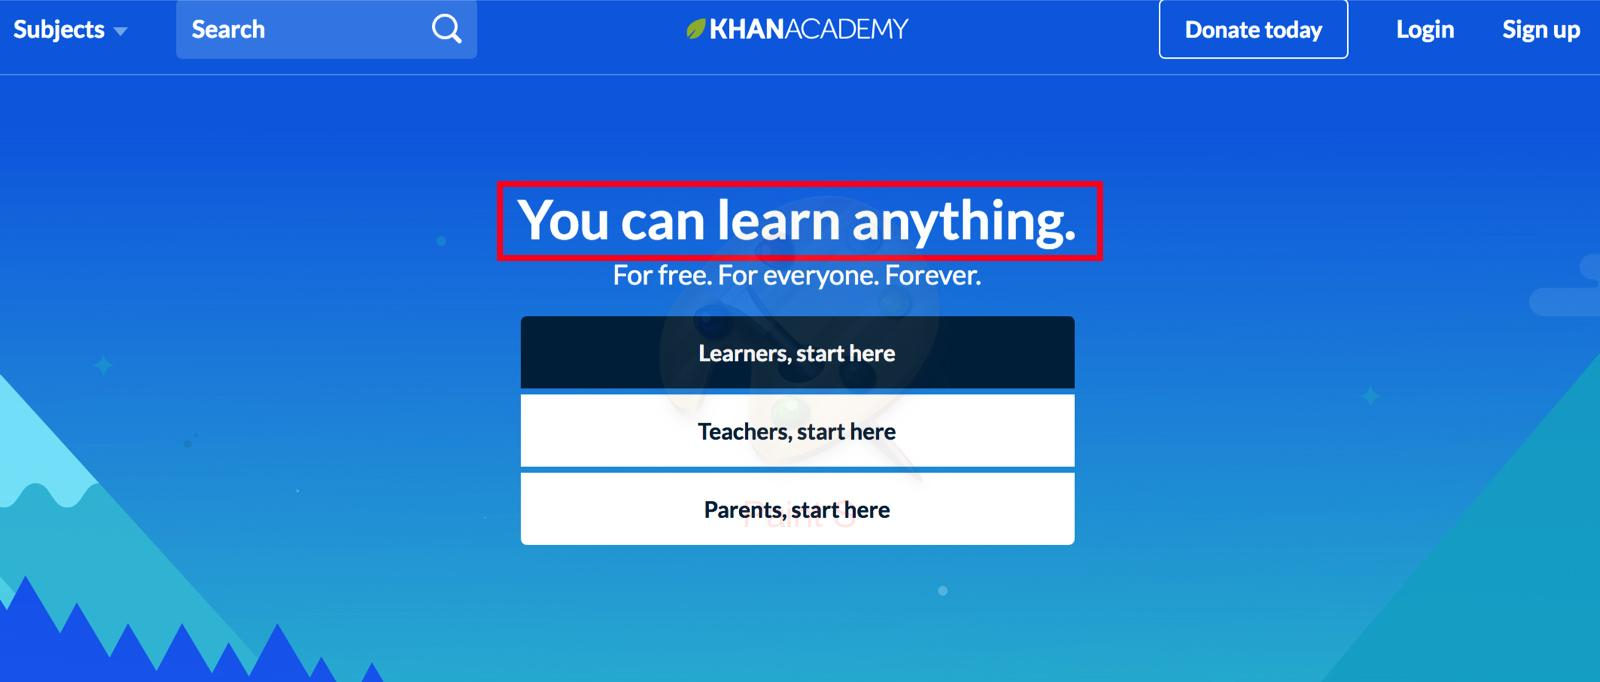 khan academy homepage headline